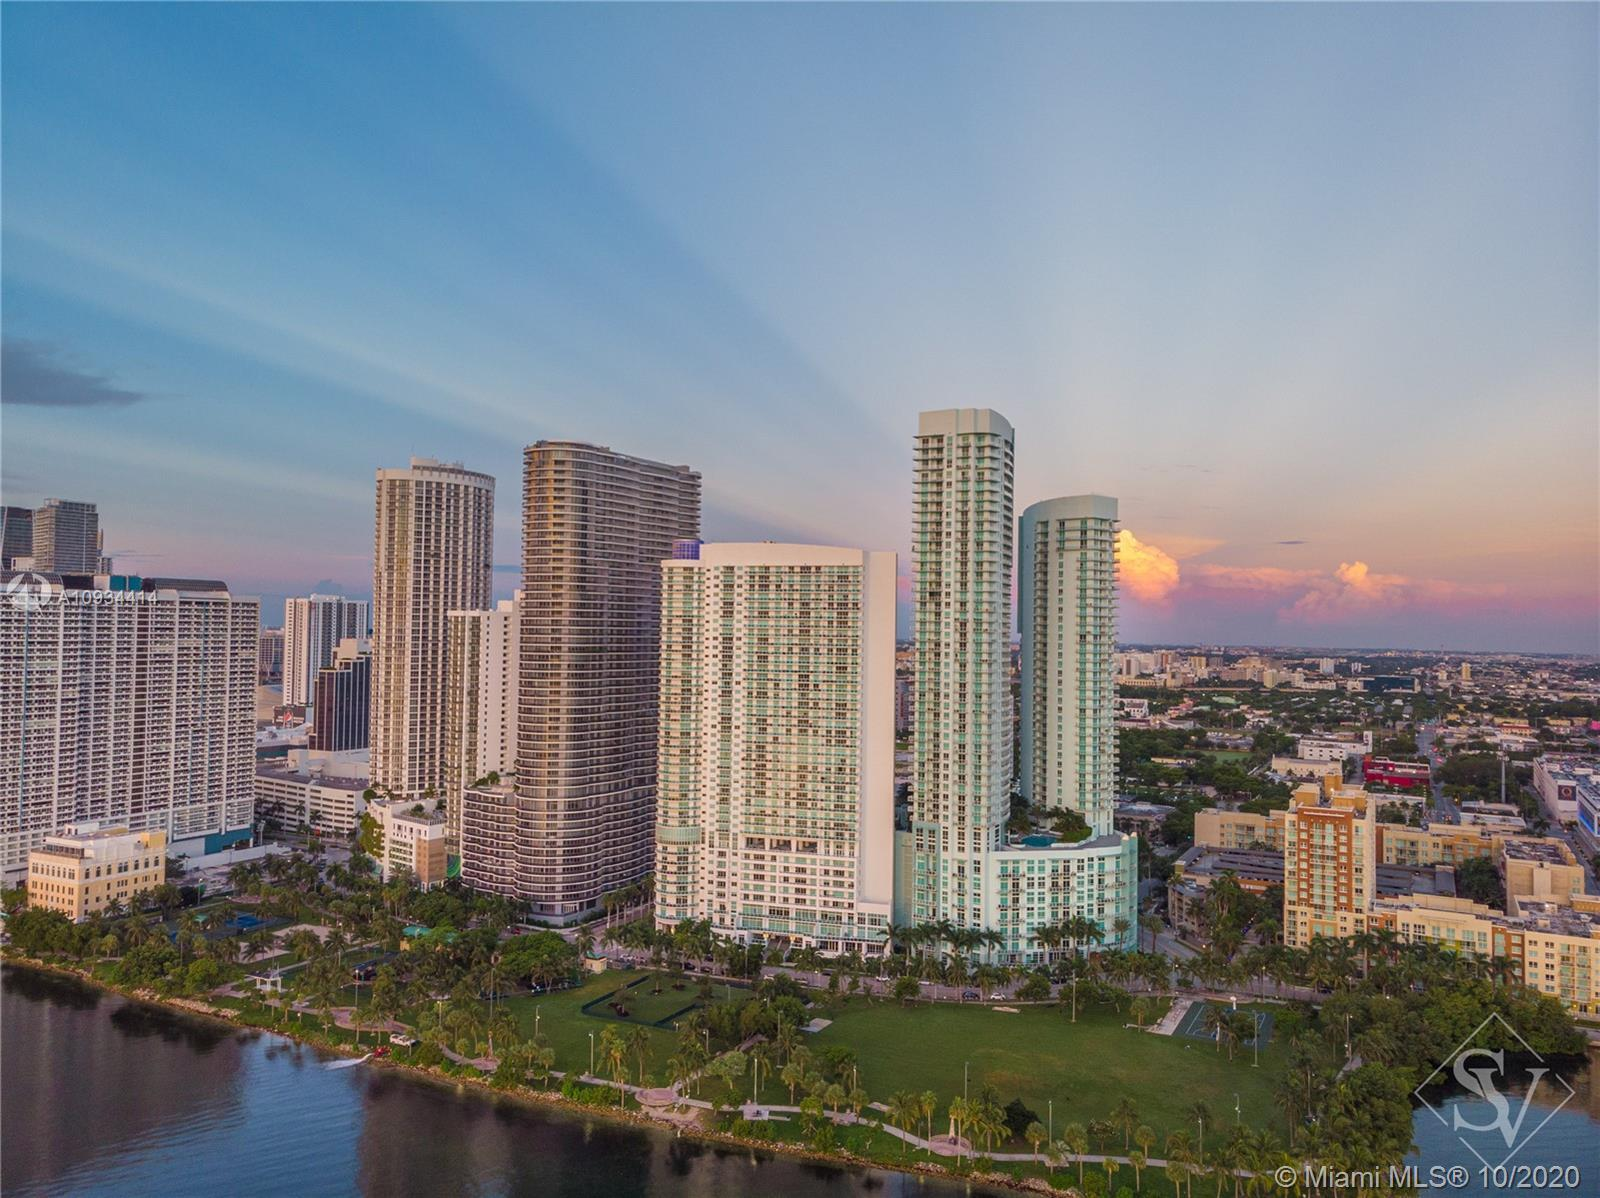 Live in one of Miamis most desirable neighborhoods steps from shopping dining & entertainment in thi